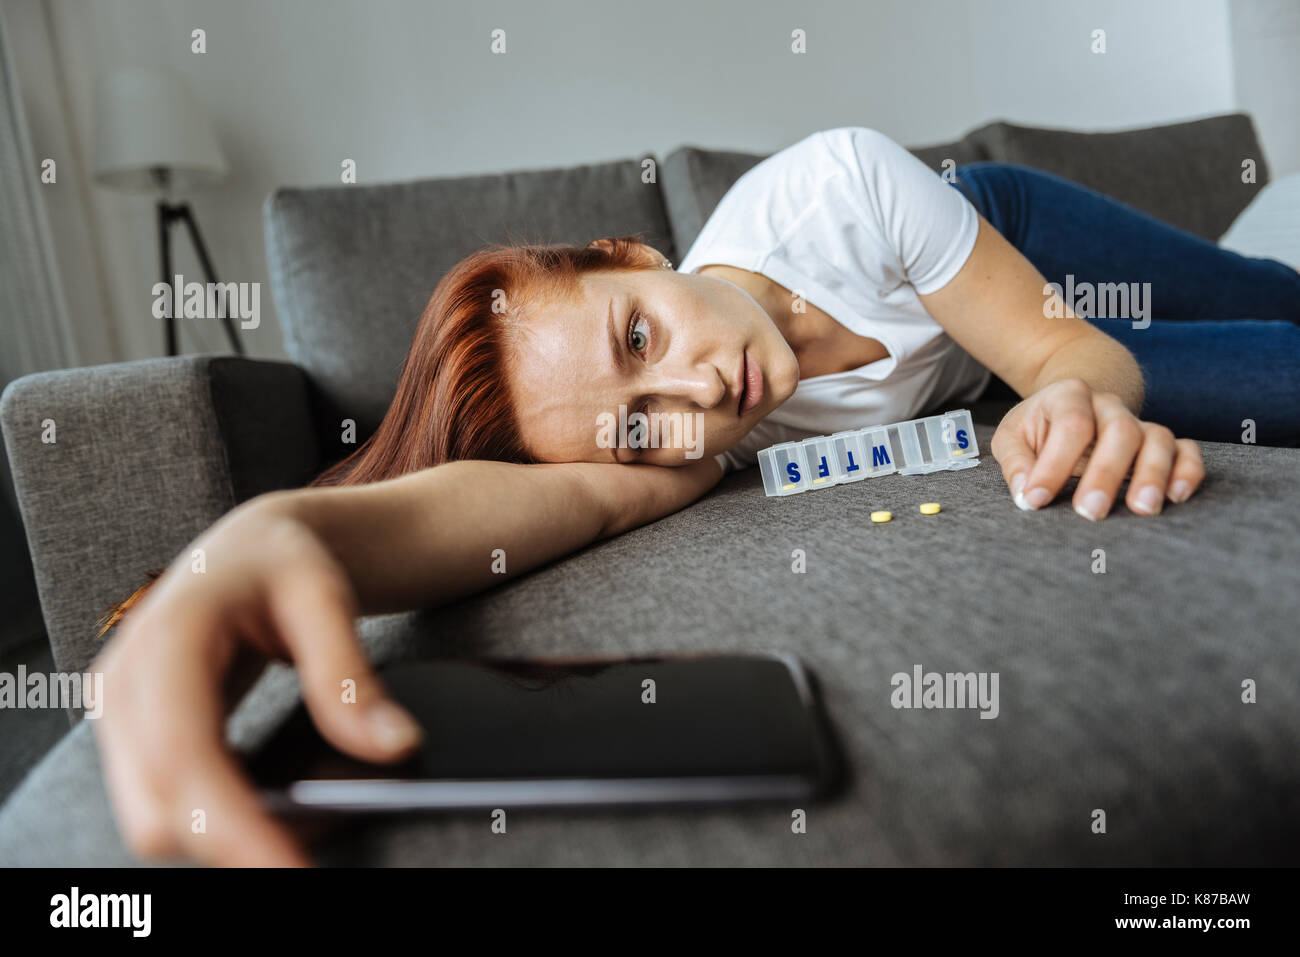 Sad exhausted woman holding her smartphone - Stock Image